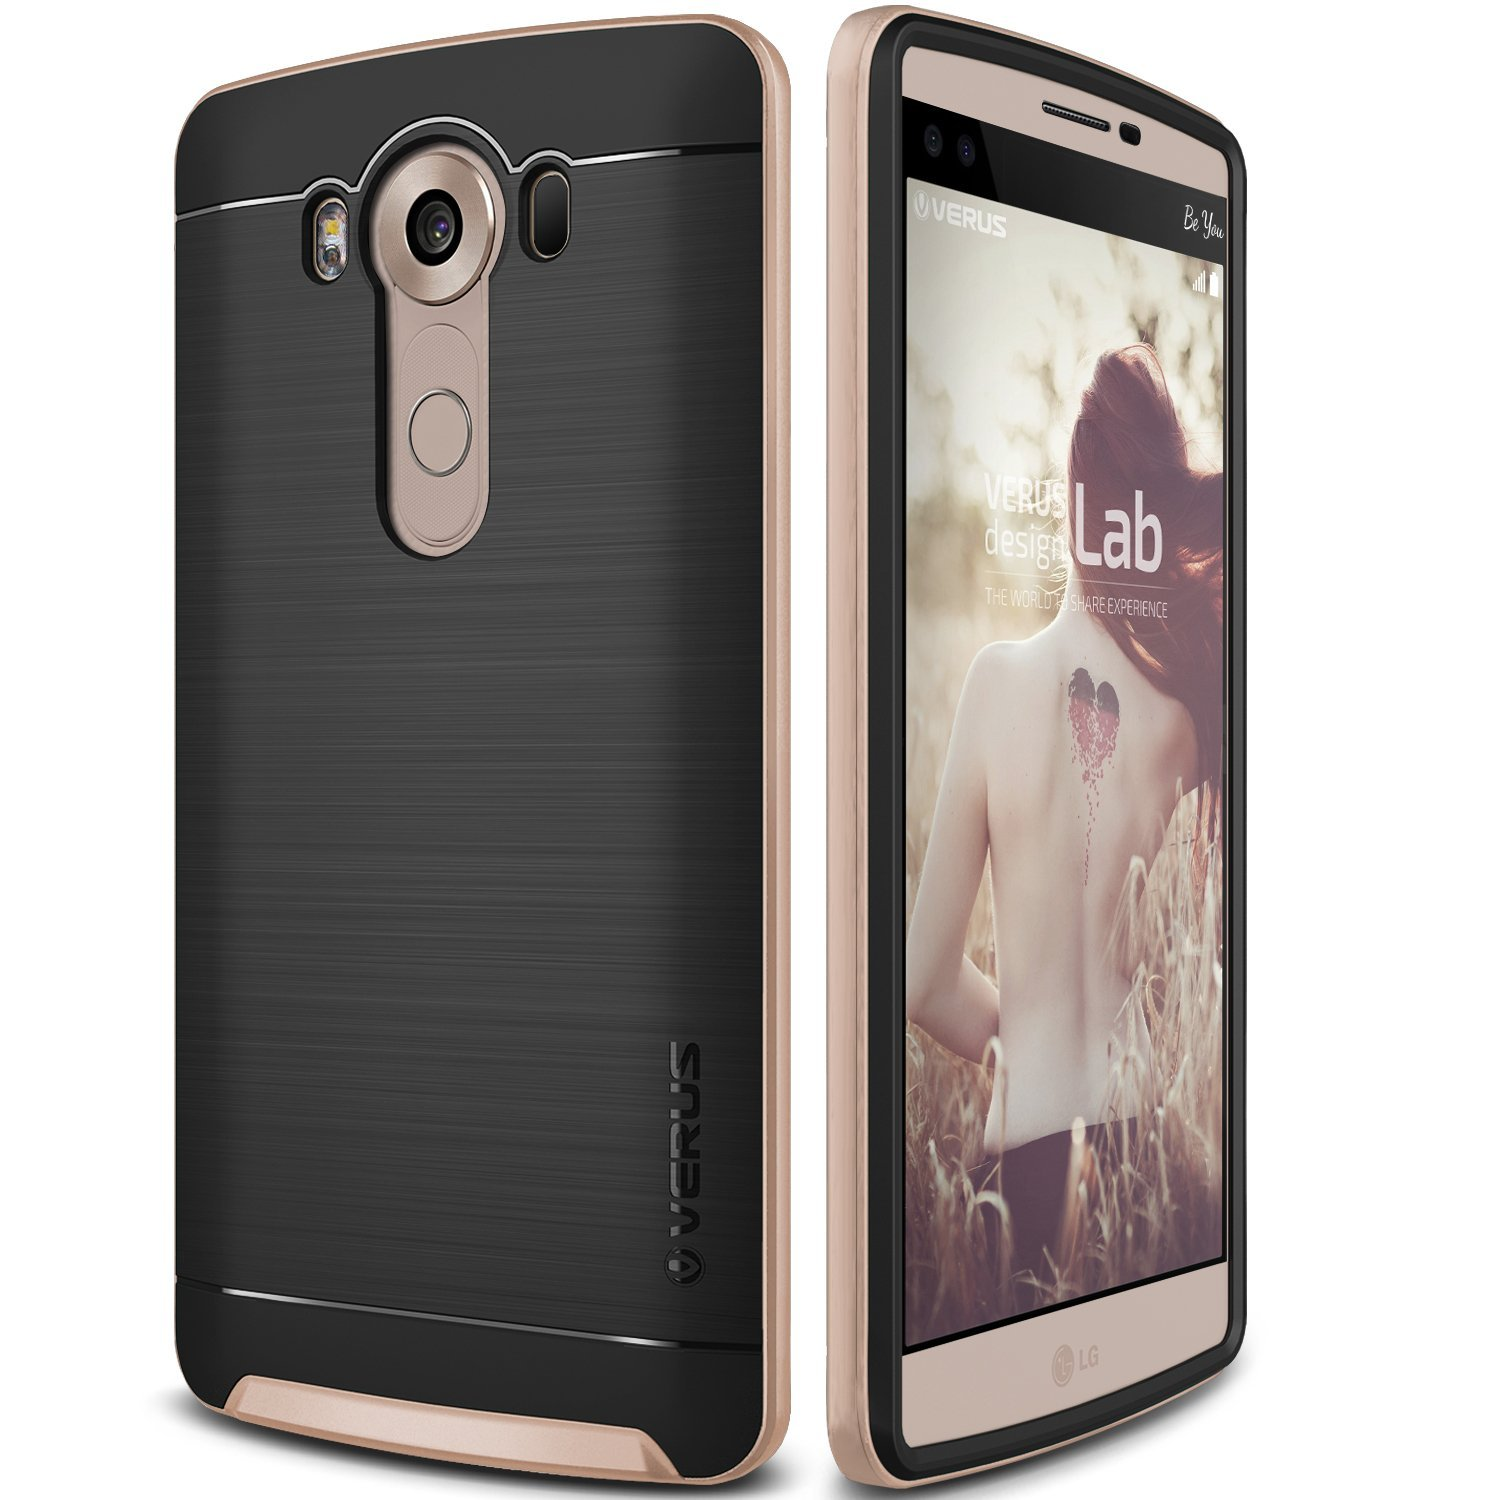 Verus Θήκη High Pro Shield Series LG V10 - Shine Gold (VRLV10-HPSGD)